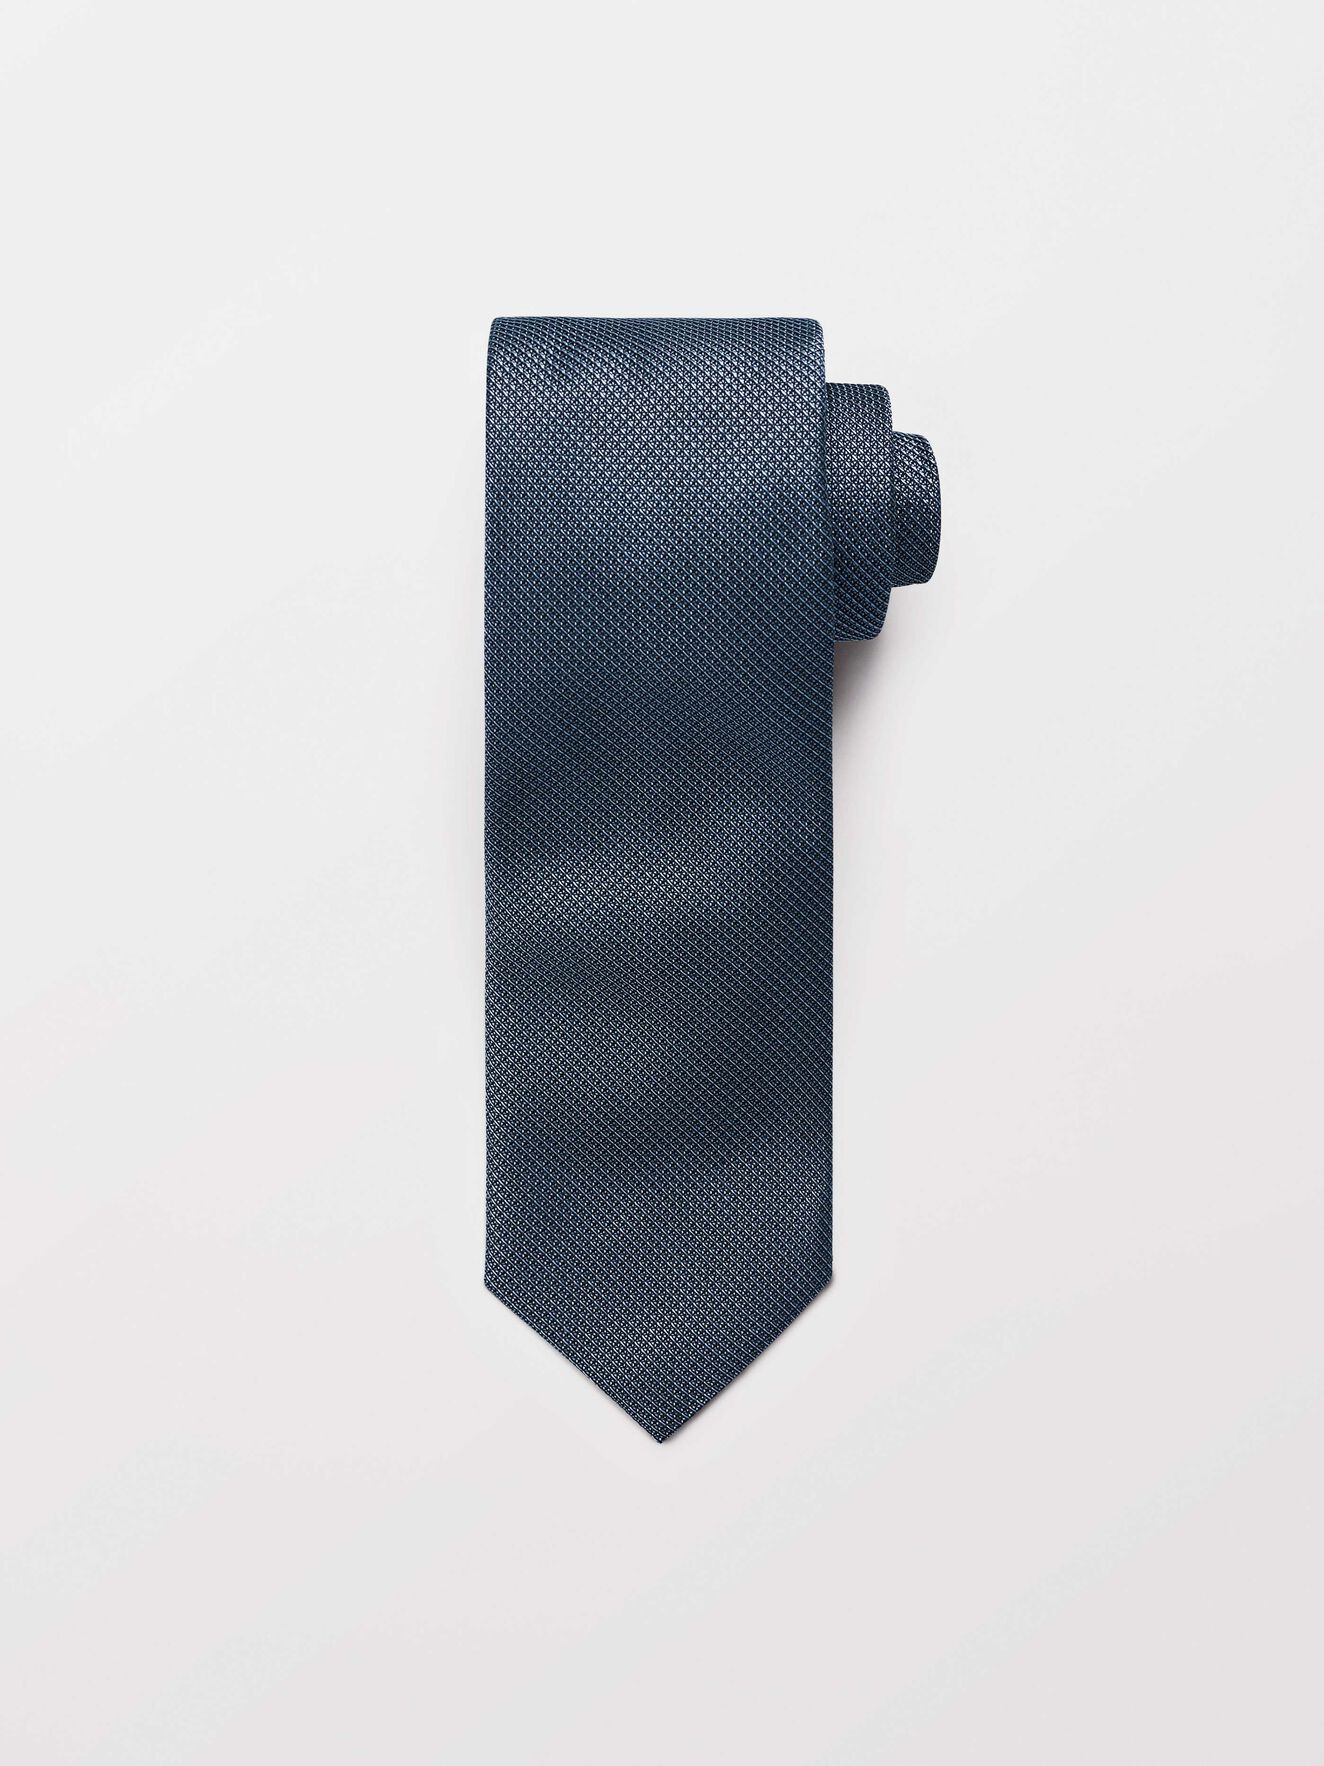 Triss Tie in Airy Blue from Tiger of Sweden